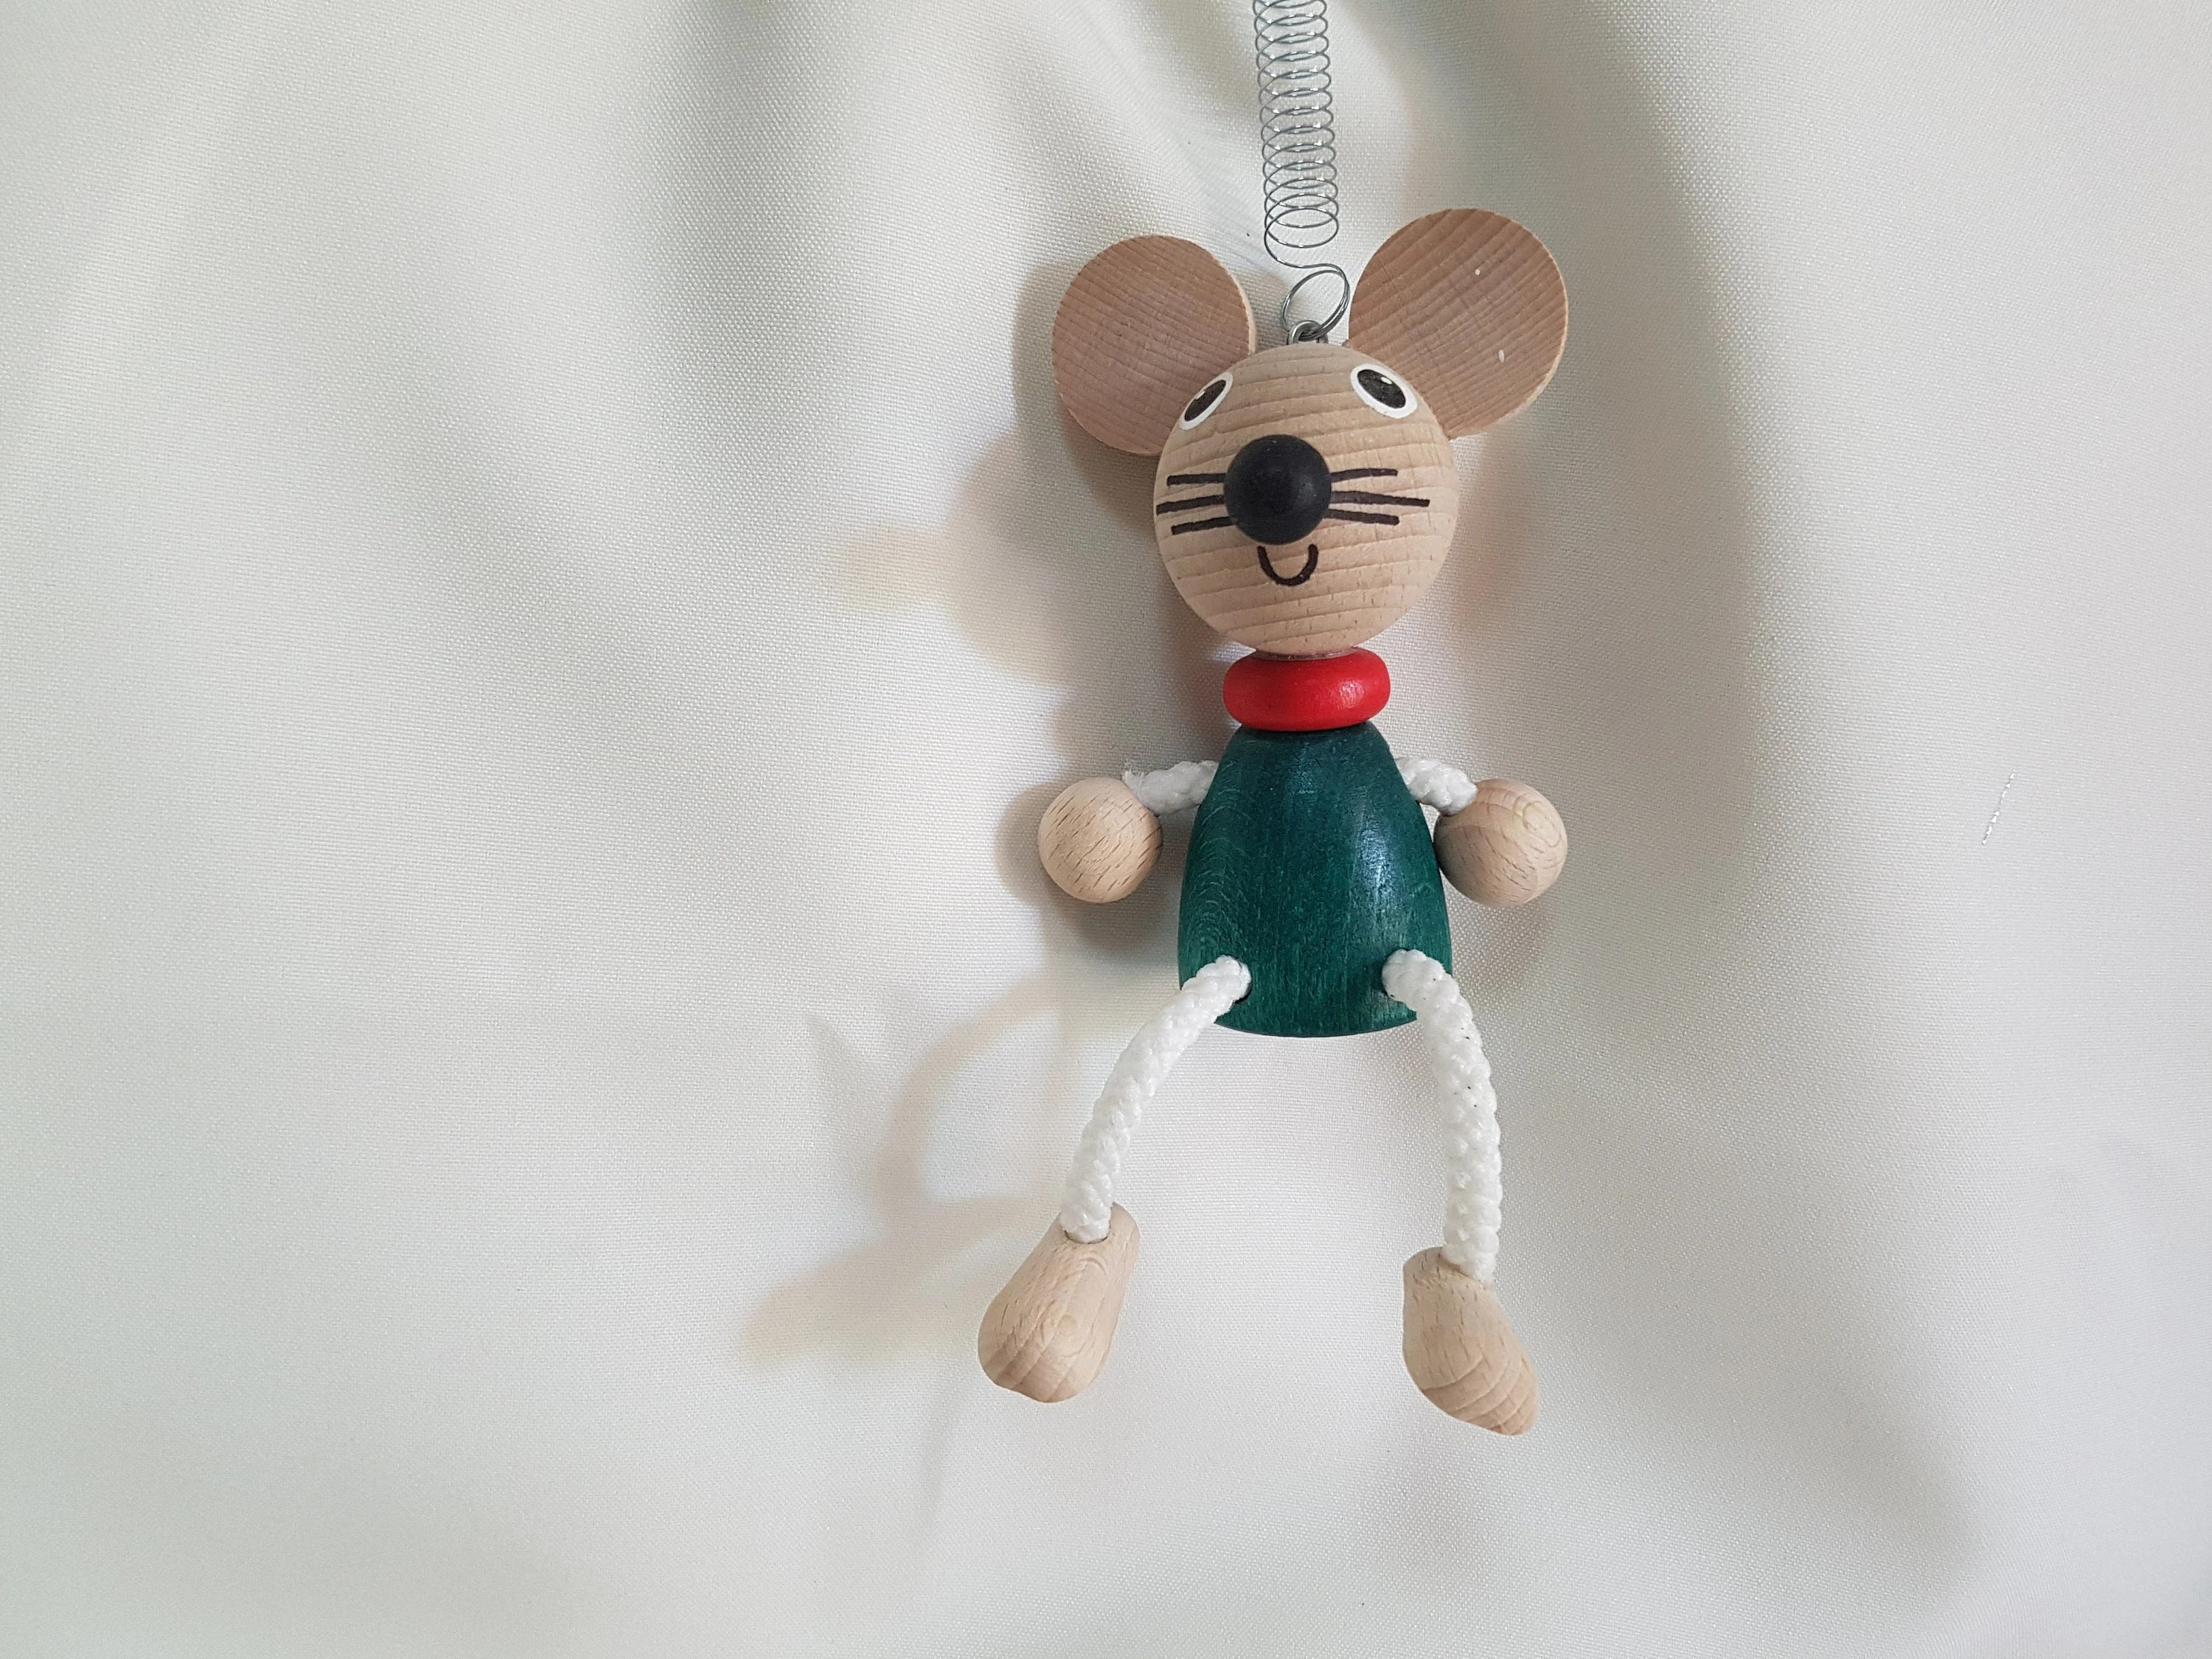 Mouse Personalizable Kids Toys Wooden Mouse Doll on Coil image 3